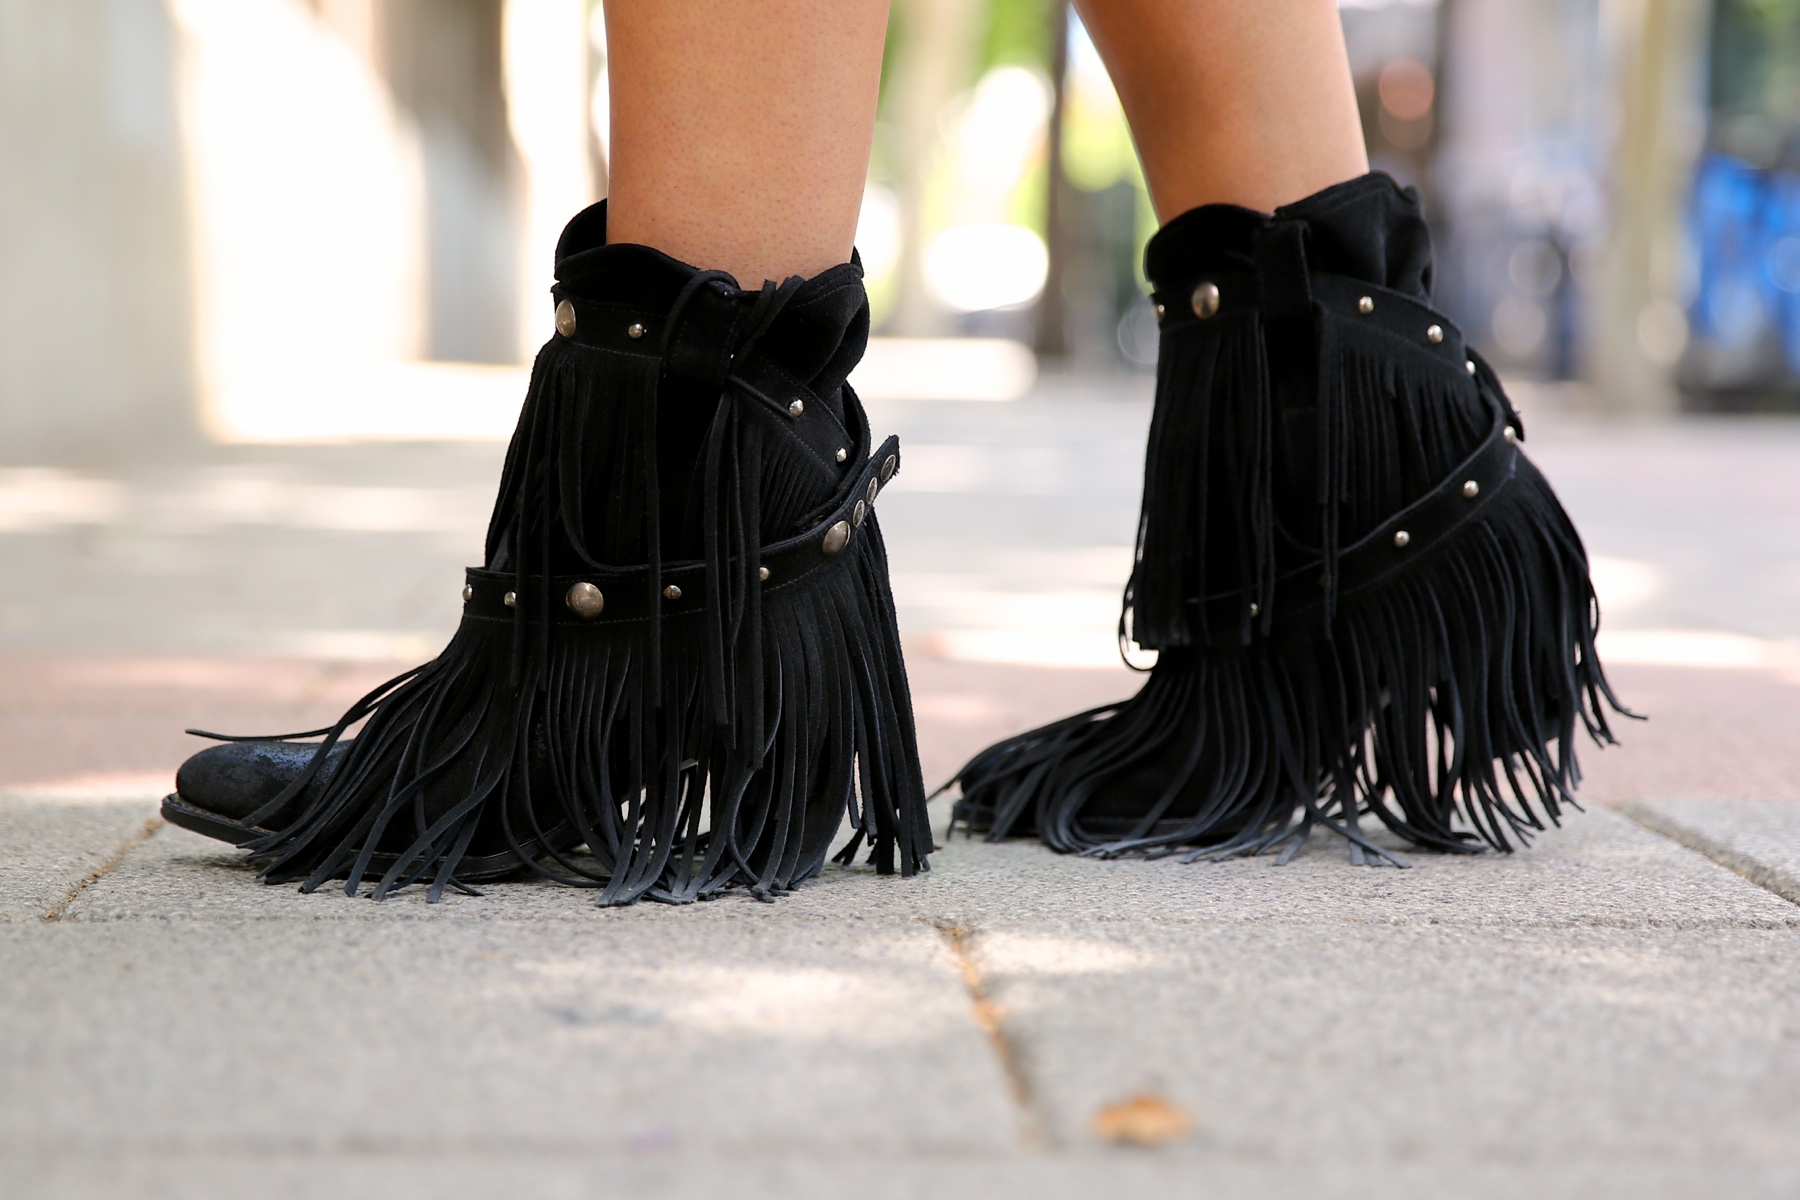 trendy_taste-look-outfit-street_style-ootd-blog-blogger-fashion_spain-moda_españa-fringes_booties-botines_flecos-sendra-chaleco_flecos-fringes_jacket-marc_jacobs-cowboy_booties-botines_camperos_negros-2